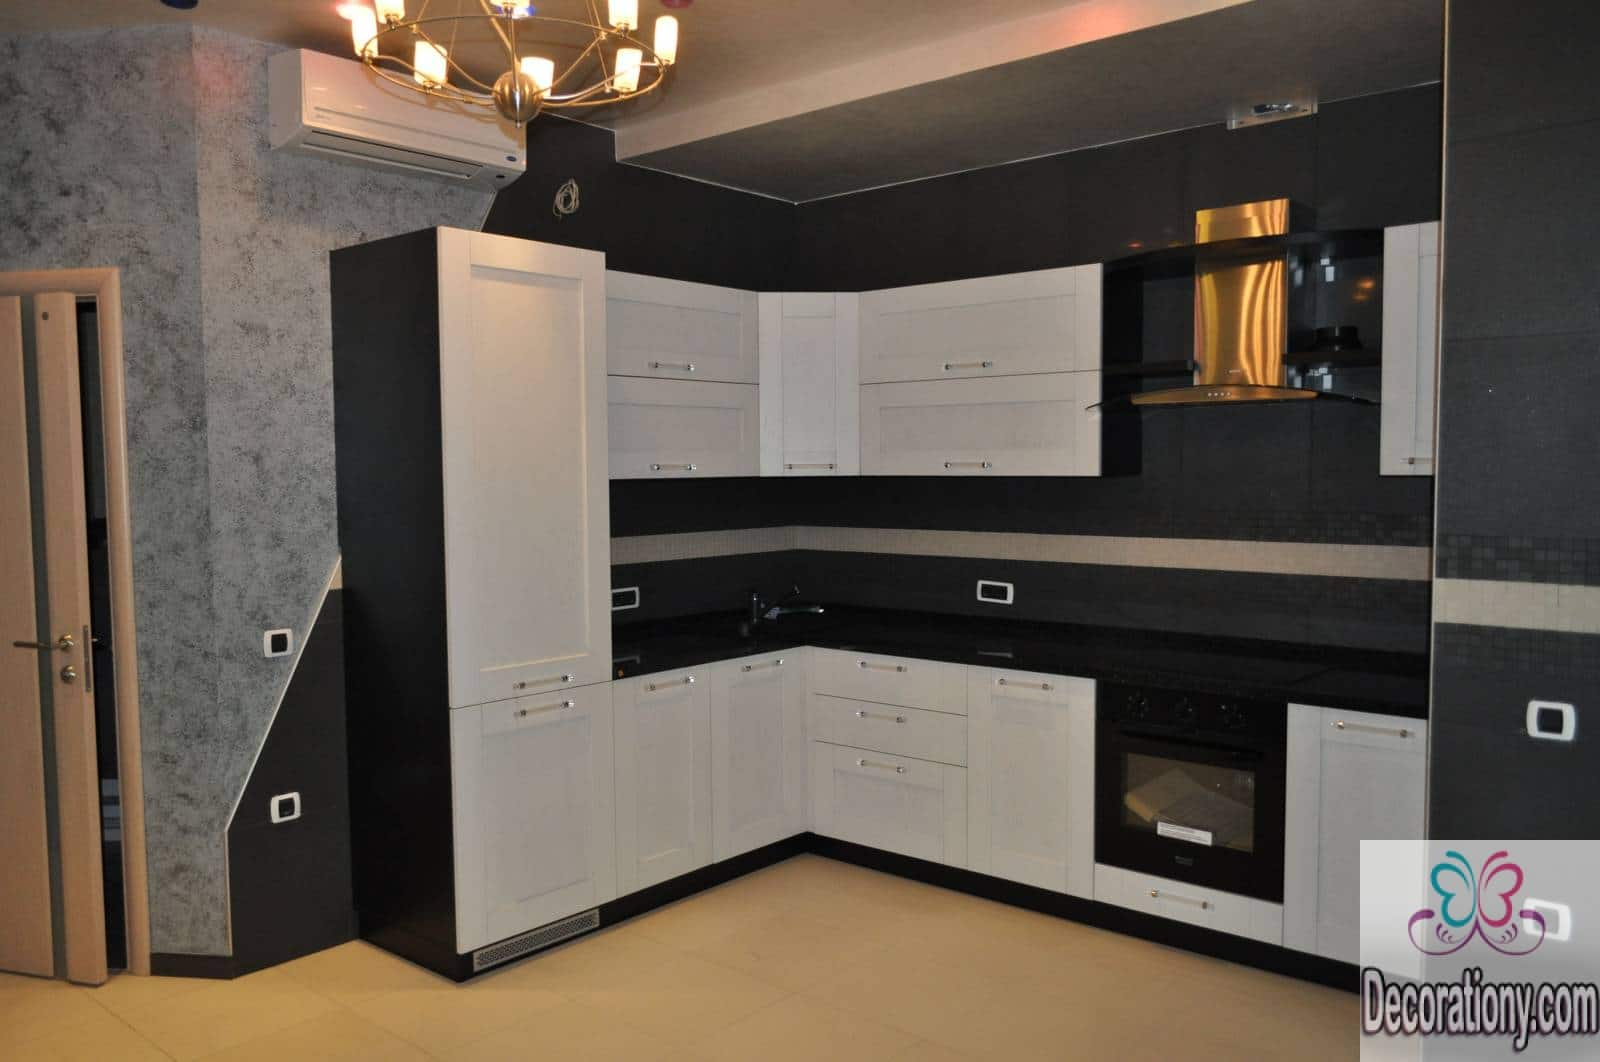 plan wam garage cottage an l shaped kitchen offers a full us